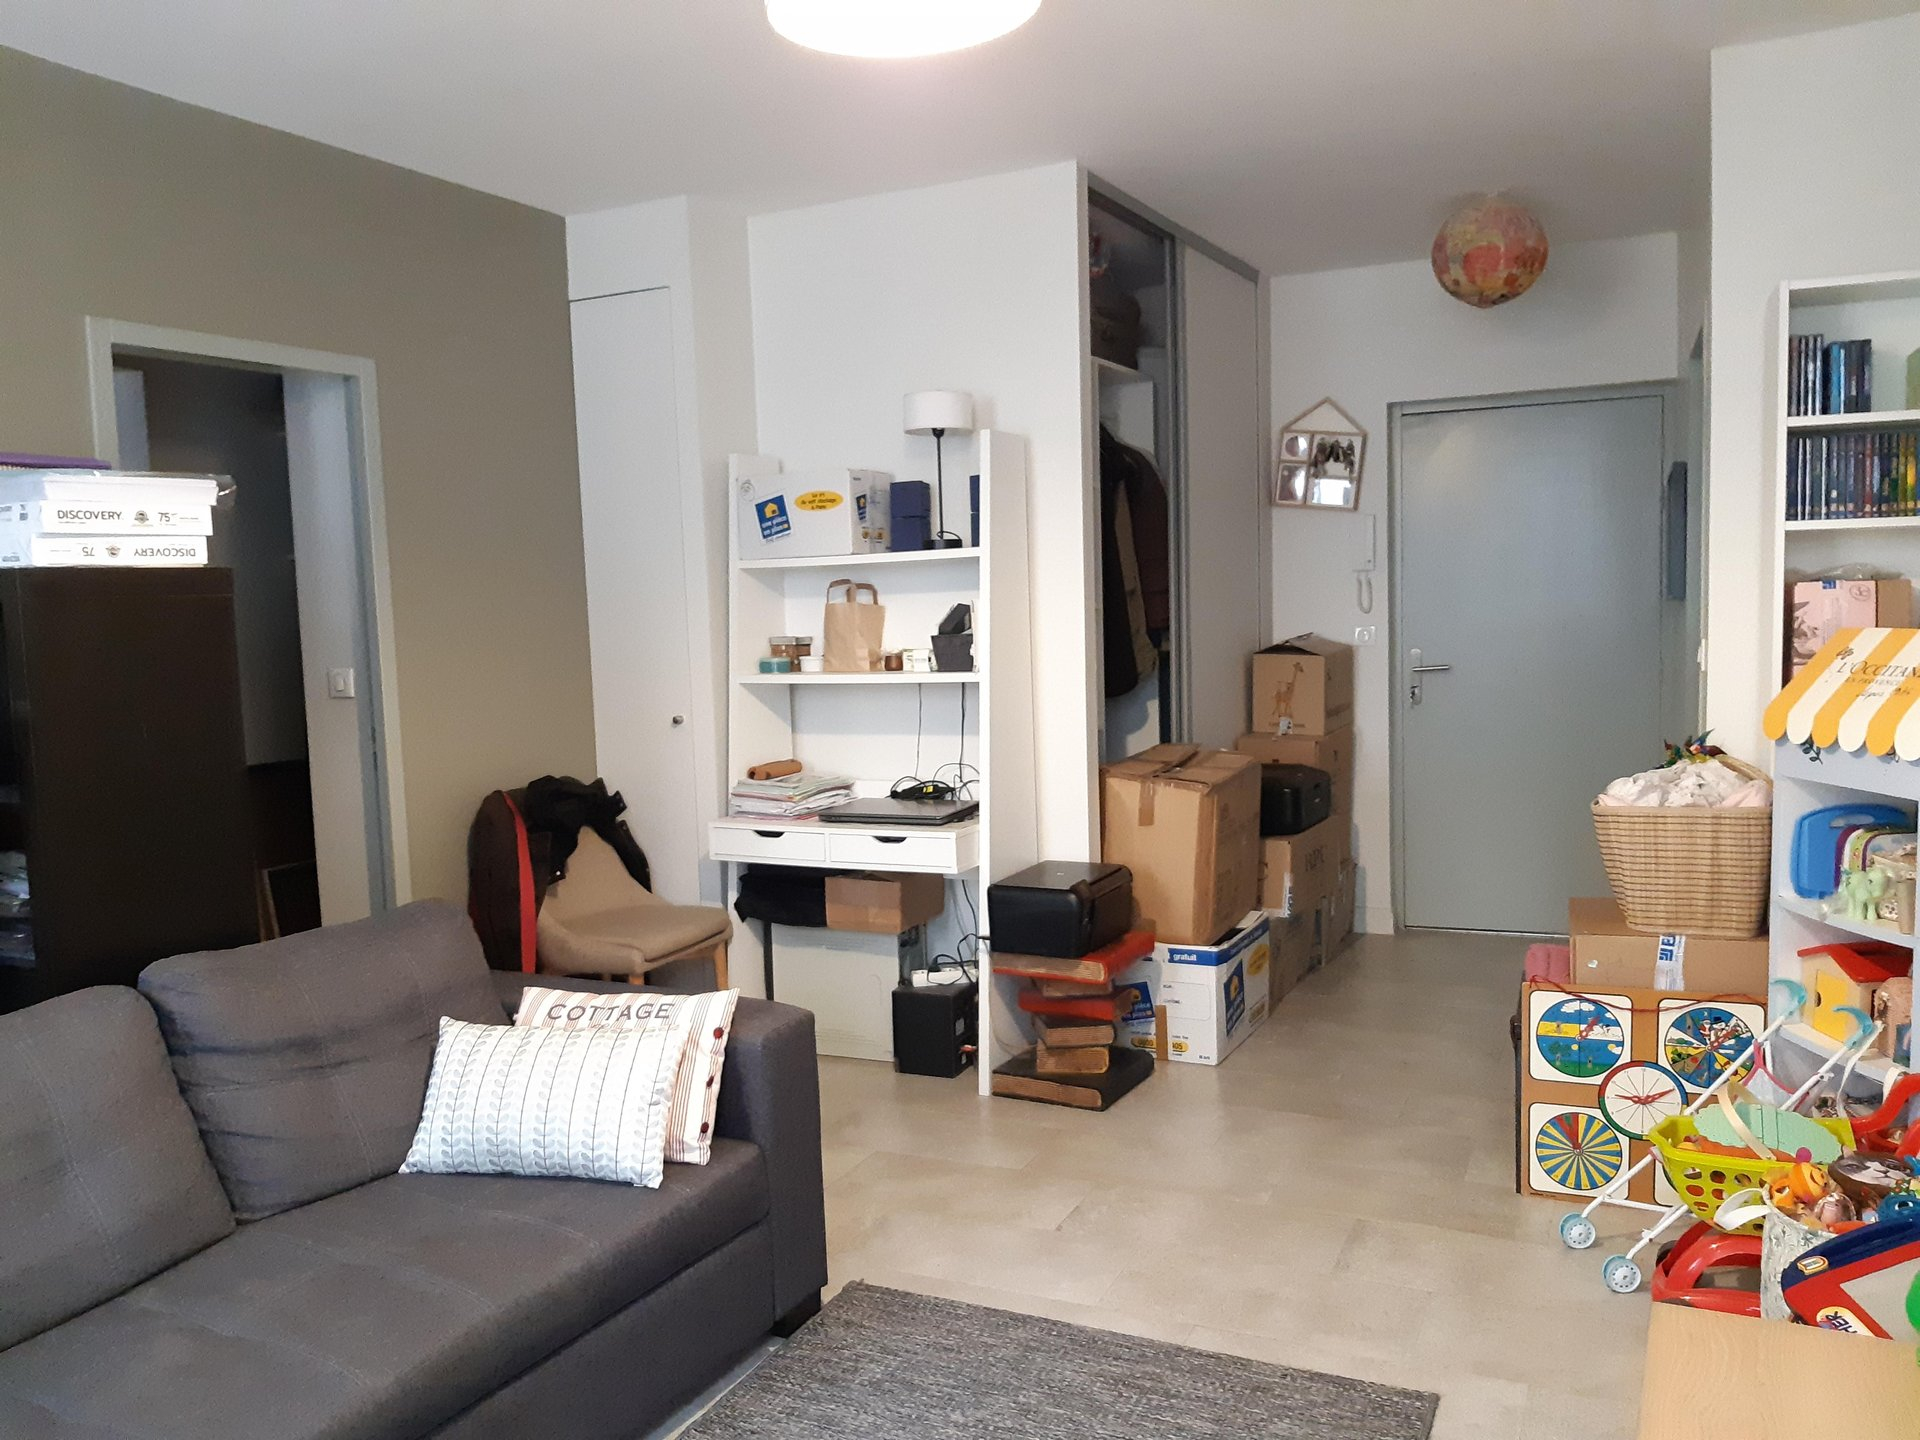 Location Appartement AVIGNON surface habitable de 65 m²